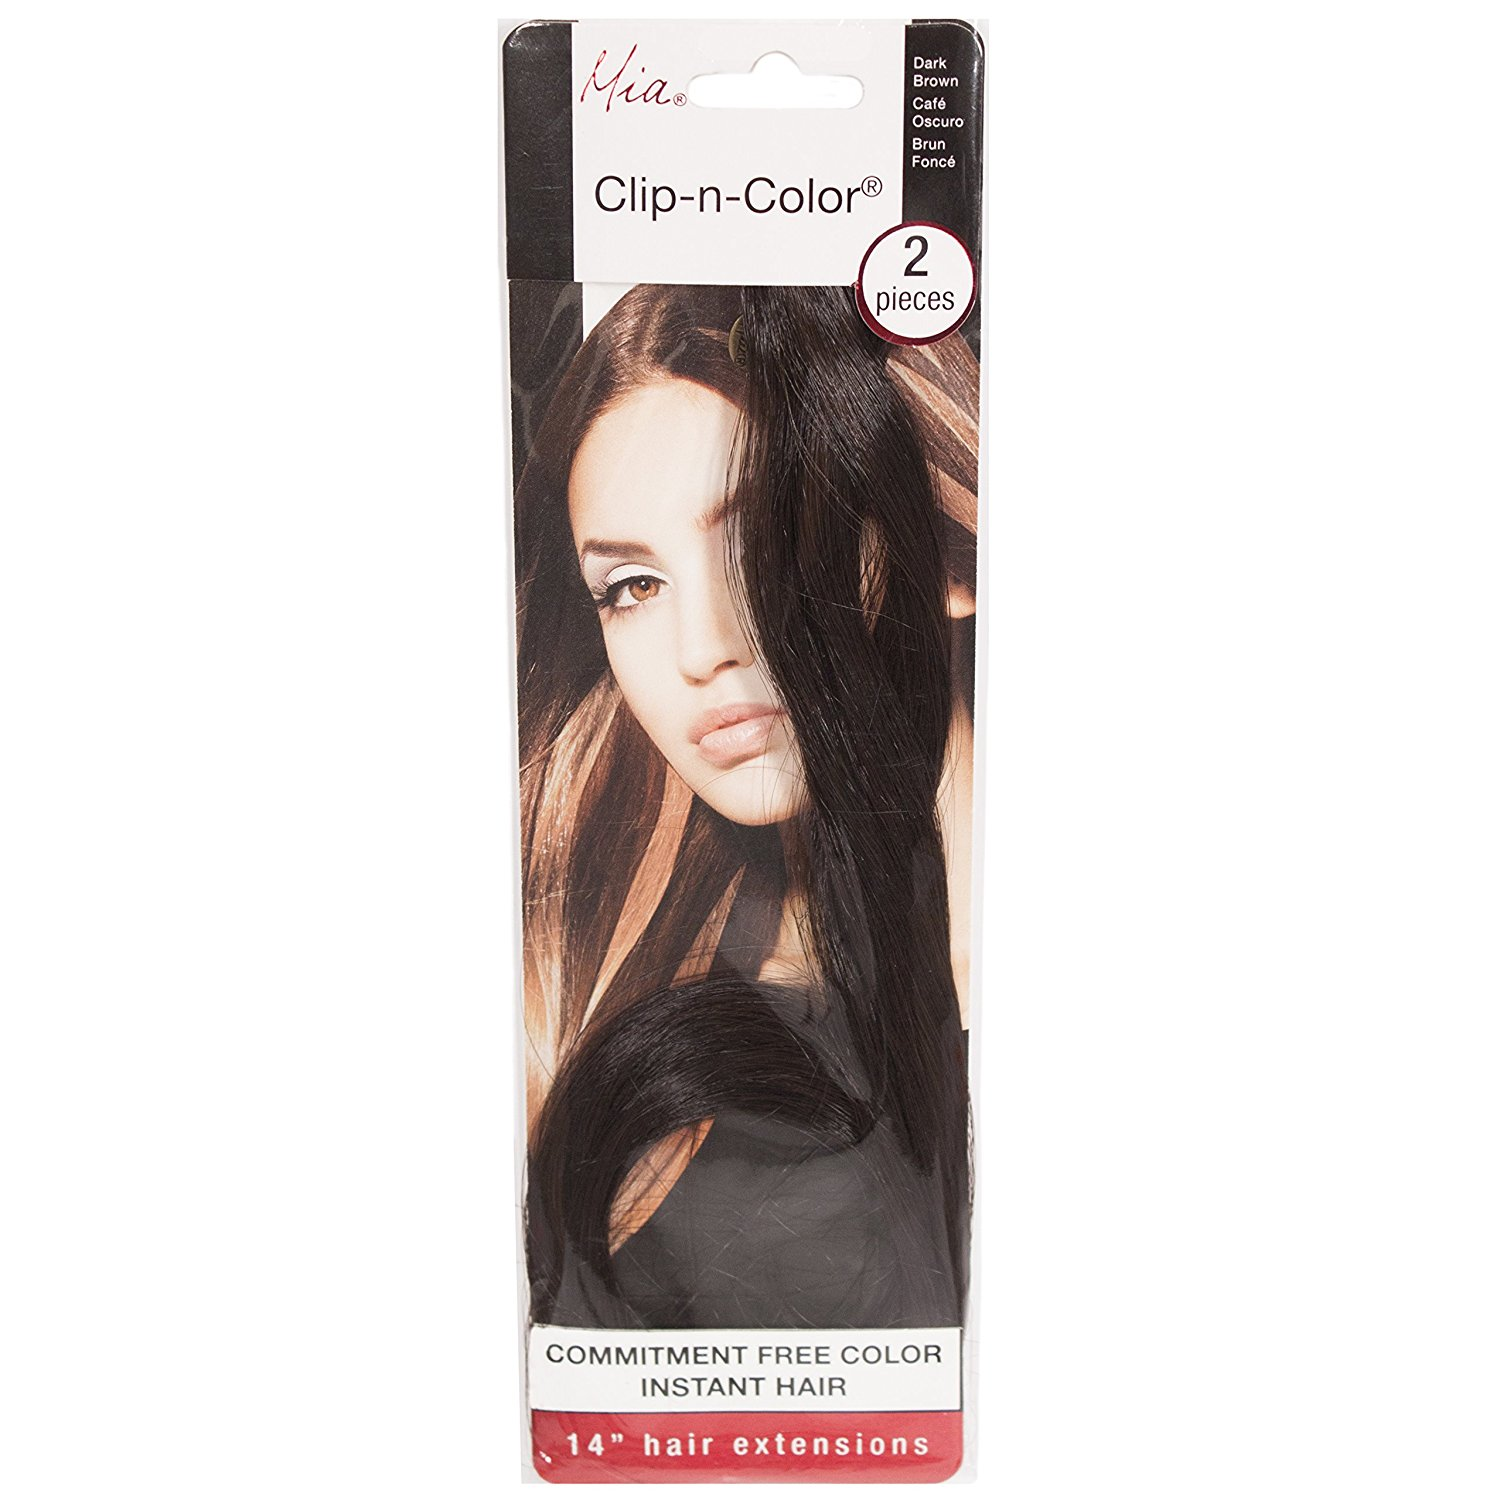 "Mia Clip-n-Color-Synthetic/Faux Wig Hair Extensions On A Weft Clip-Instant Hair, Instant Length, Instant Volume! Two 14"" Long x 1"" Wide Hair Extensions-Dark Brown Color (2 pieces per package)"